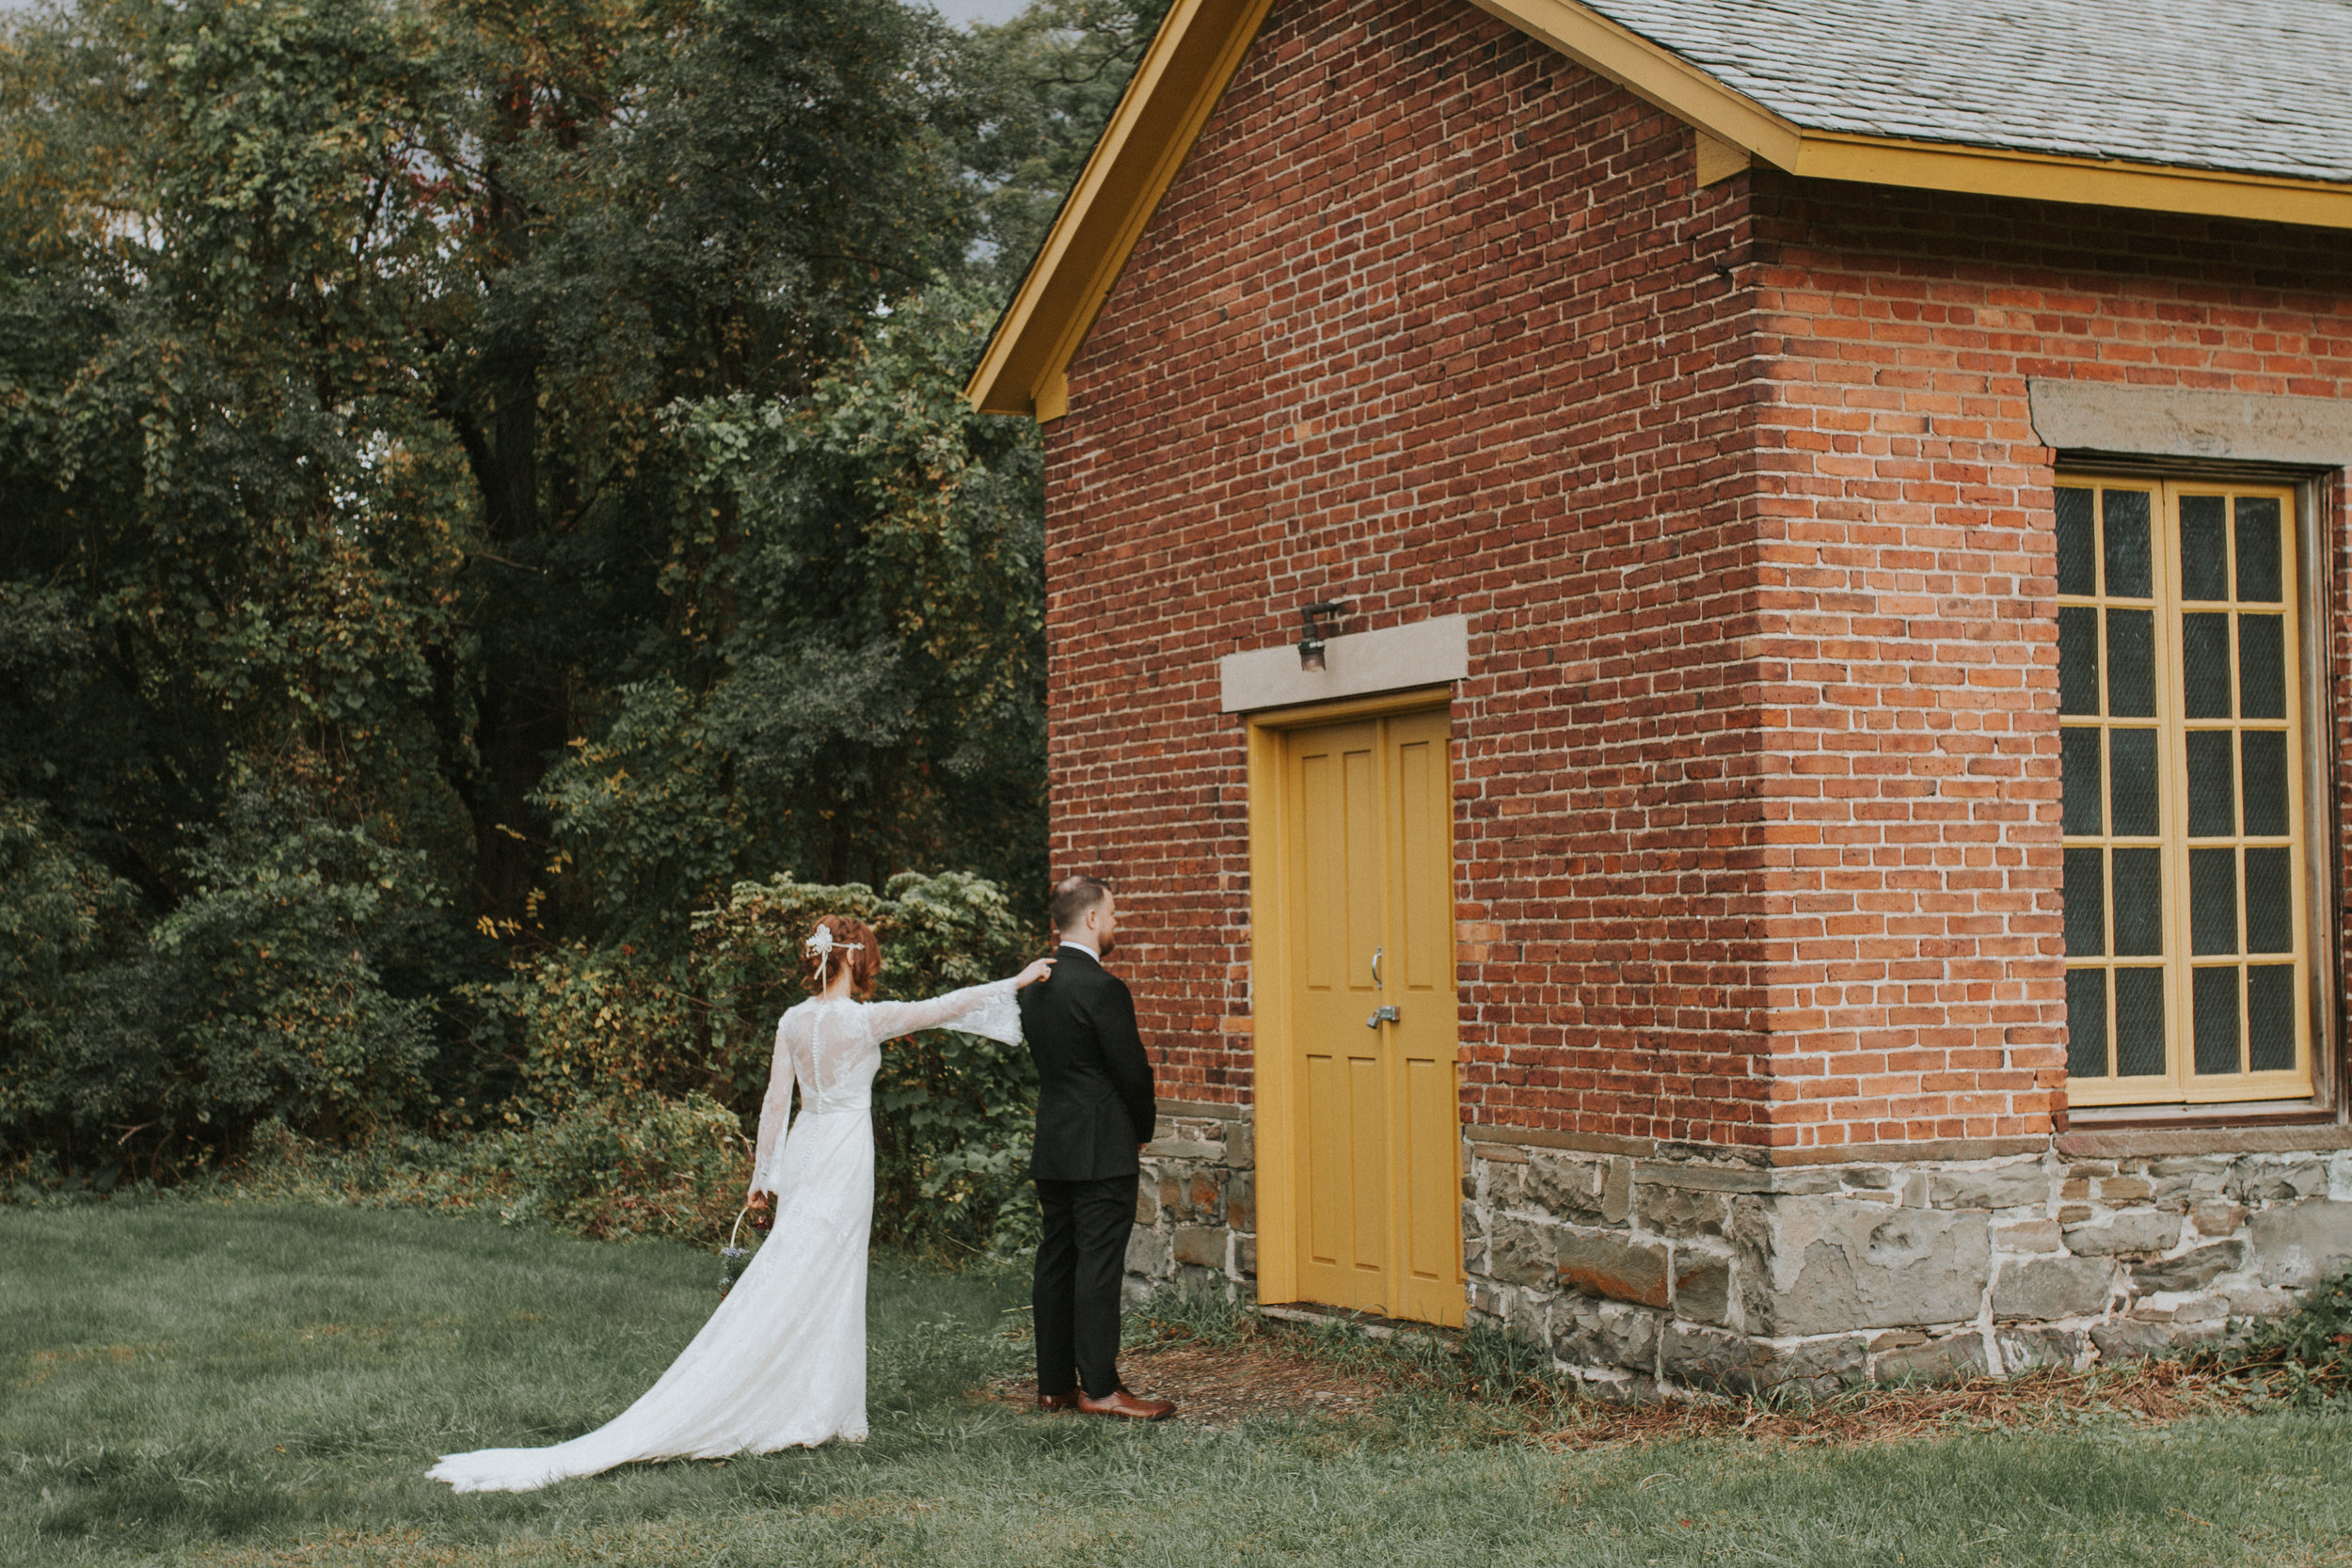 shaker_heritage_barn_wedding_001.jpg